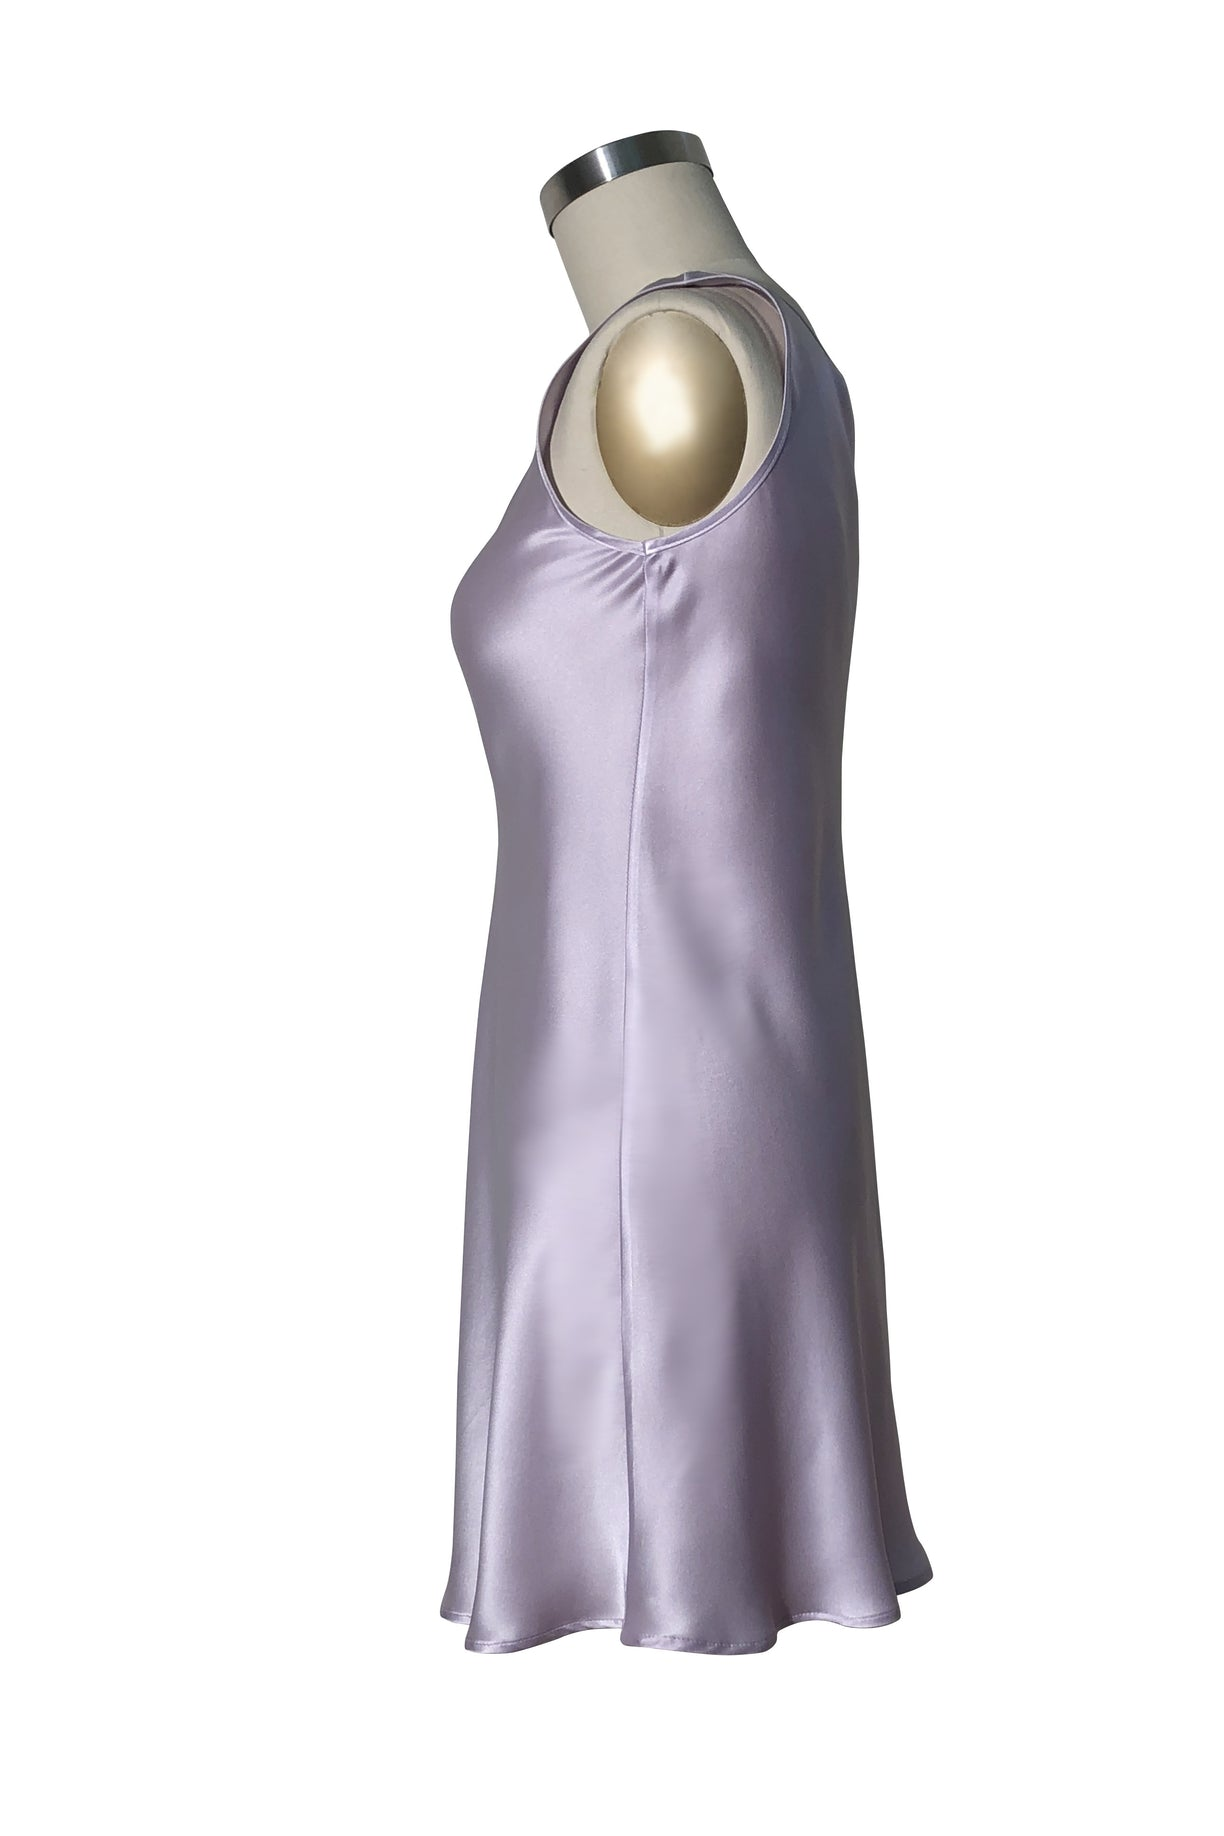 Orchid silk satin Millie side view